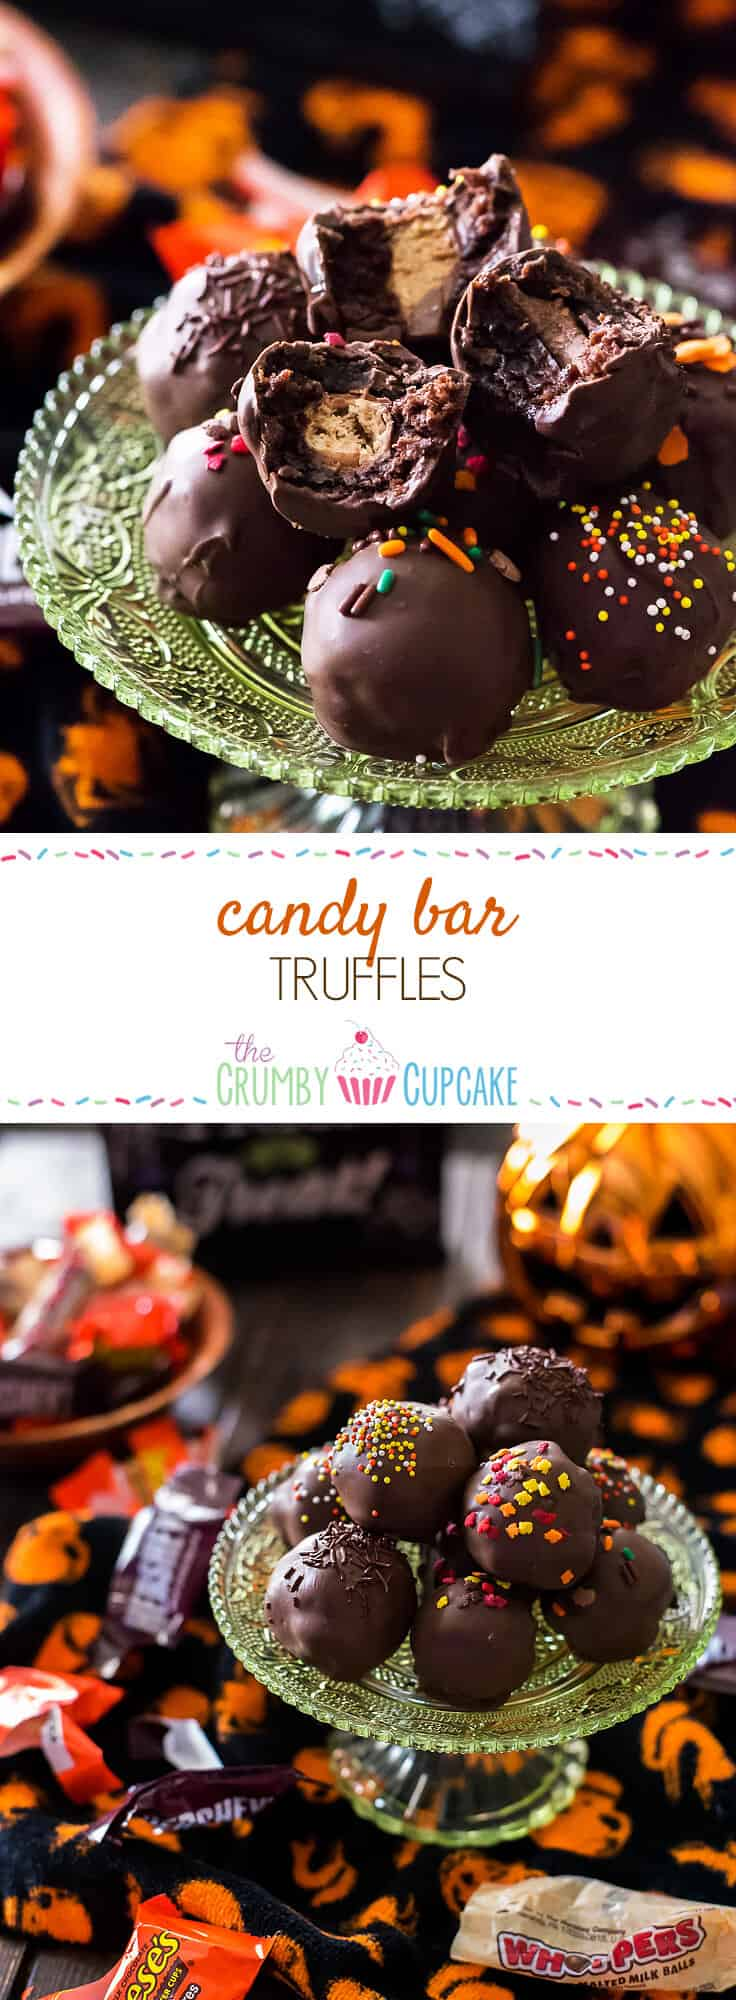 Re-purpose some of that trick-or-treat loot in a batch of these Candy Bar Truffles - chewy, fudgy brownie balls stuffed with your favorite Halloween candy and dipped in chocolate! #SundaySupper